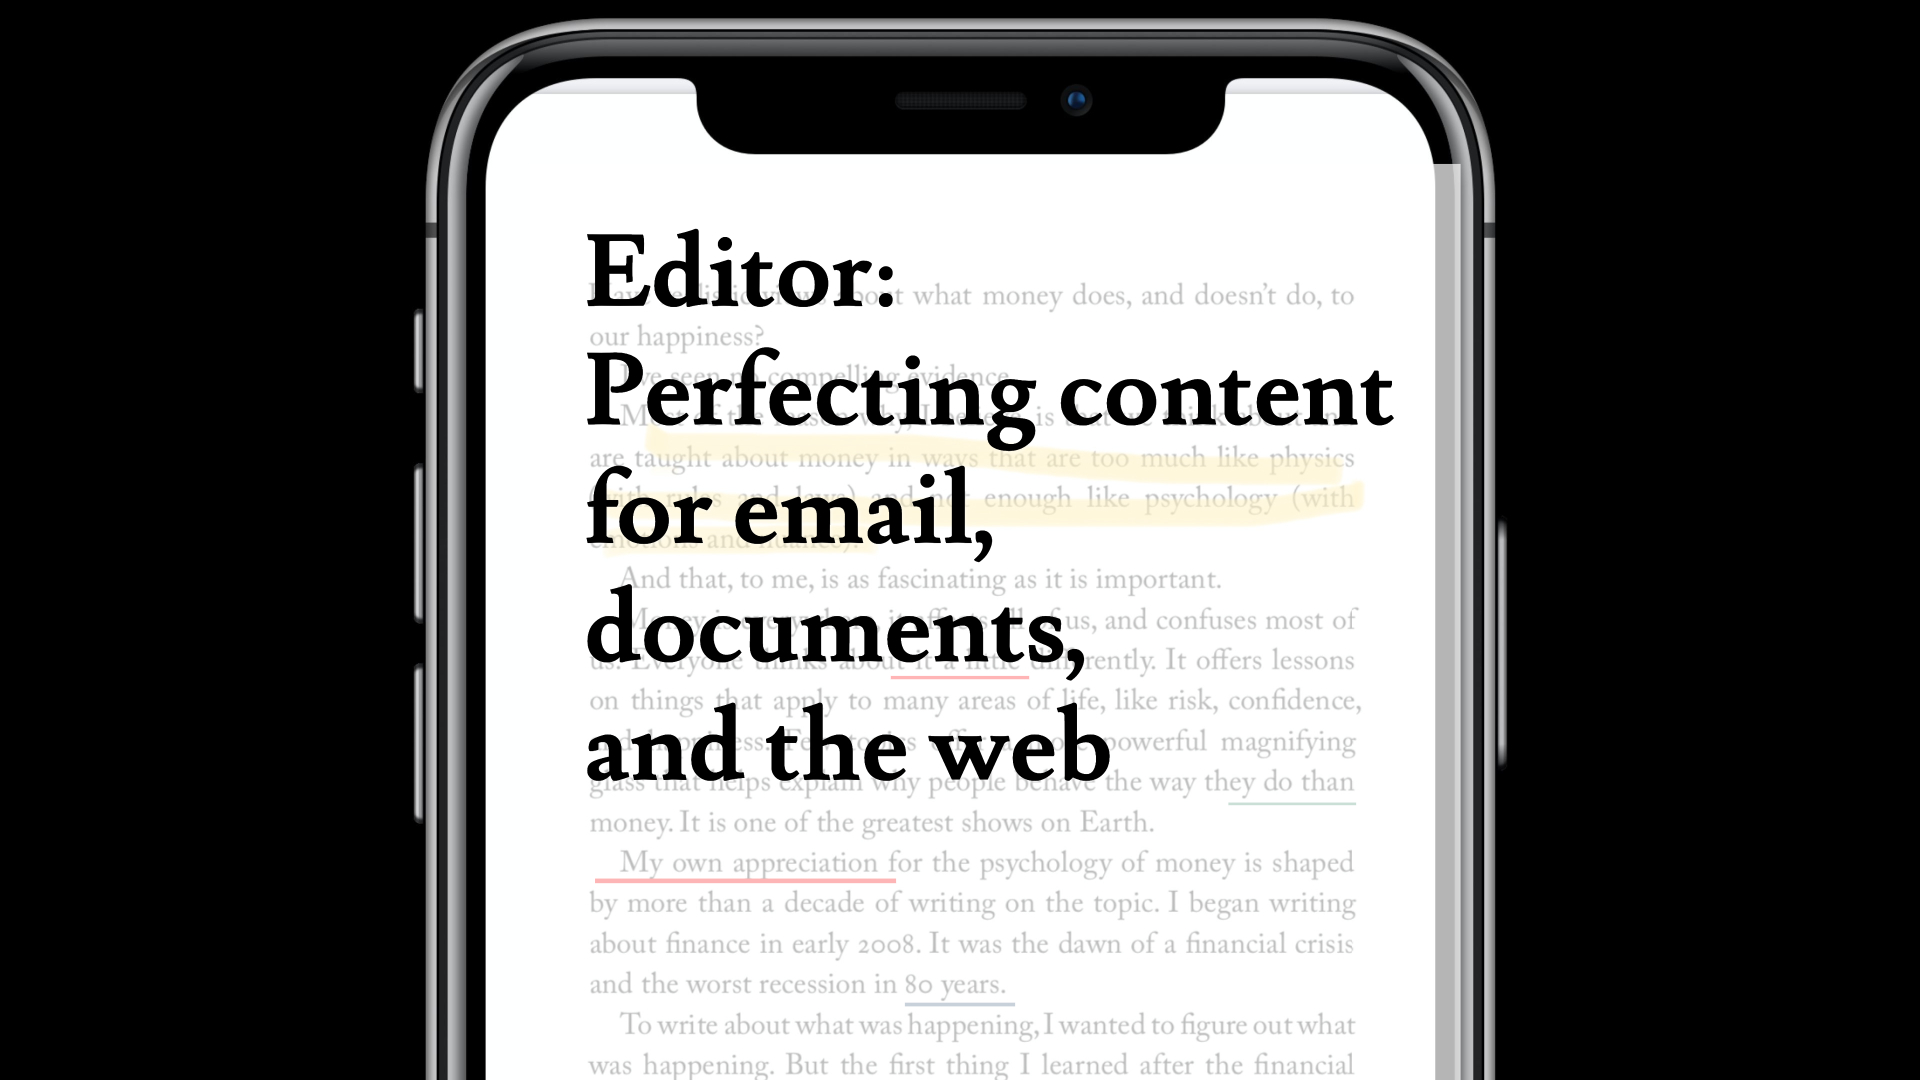 Microsoft Editor: Perfecting Content for Email, Documents, and the Web